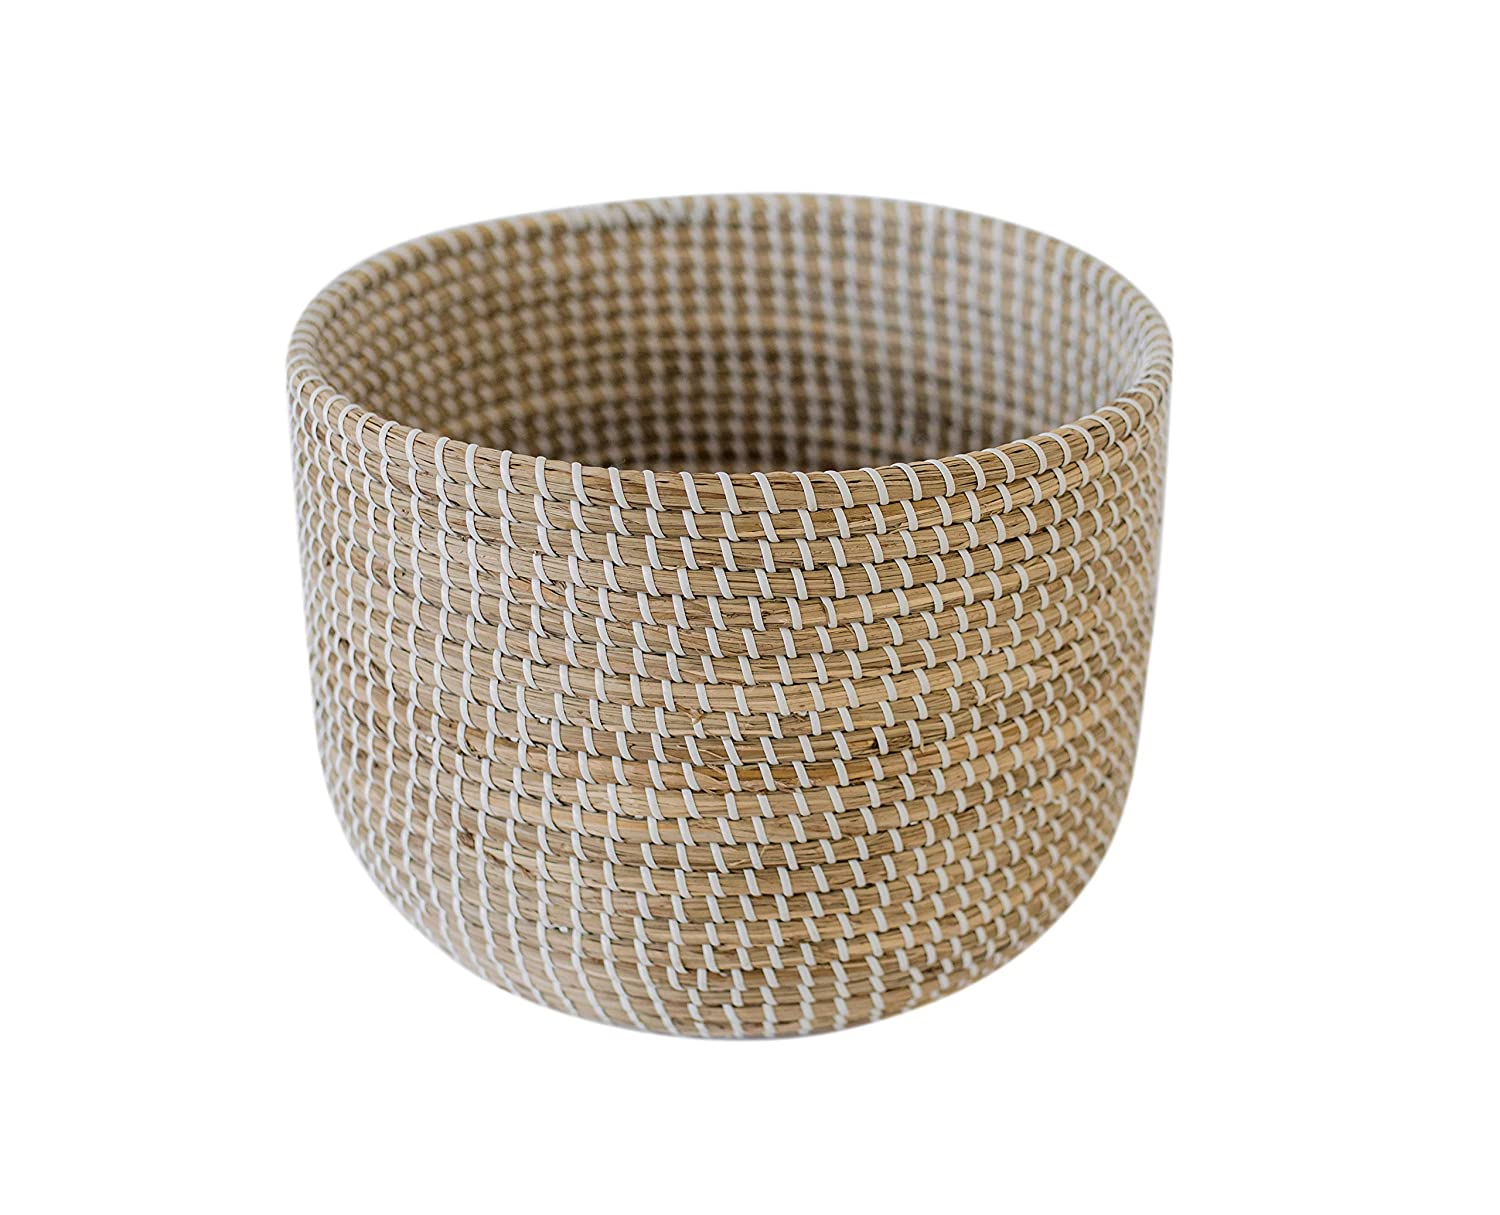 Large round seagrass storage basket - French Country Basket Inspiration: Resources for Rustic, French Market, and Boulangerie as well as photos to Inspire!